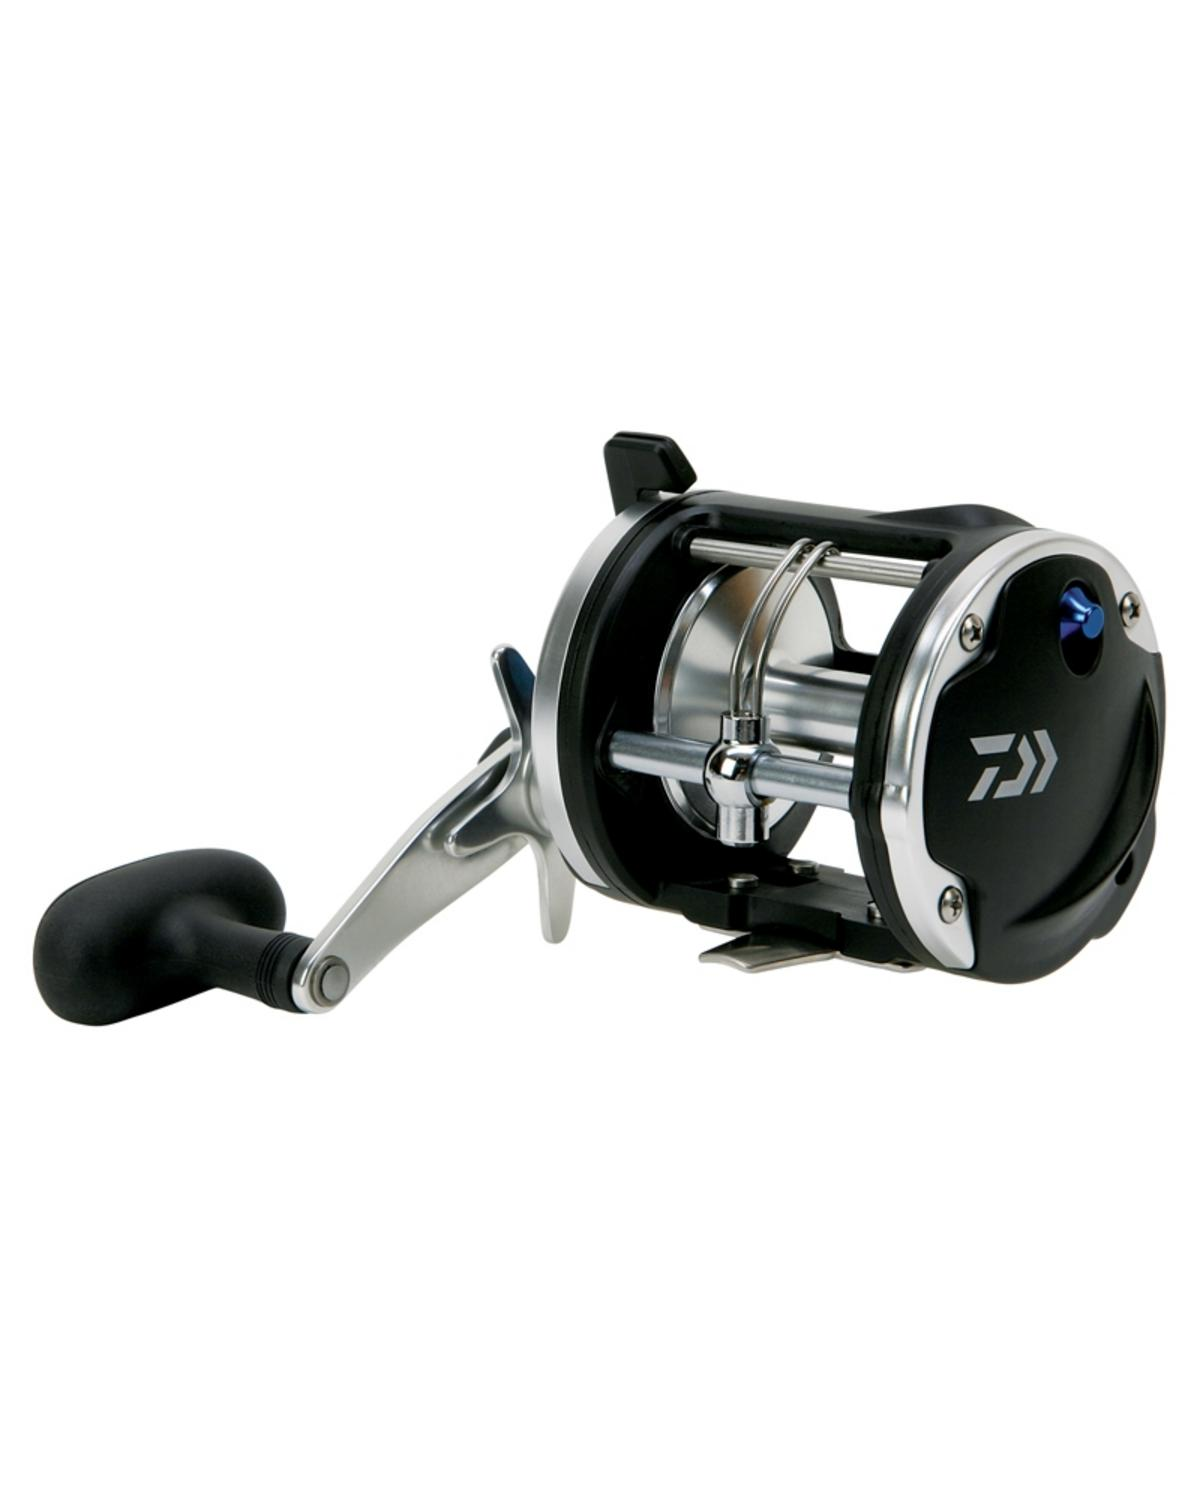 DAIWA SEAHUNTER 30LWA MULTIPLIER FISHING REEL MULTIPLIER REEL